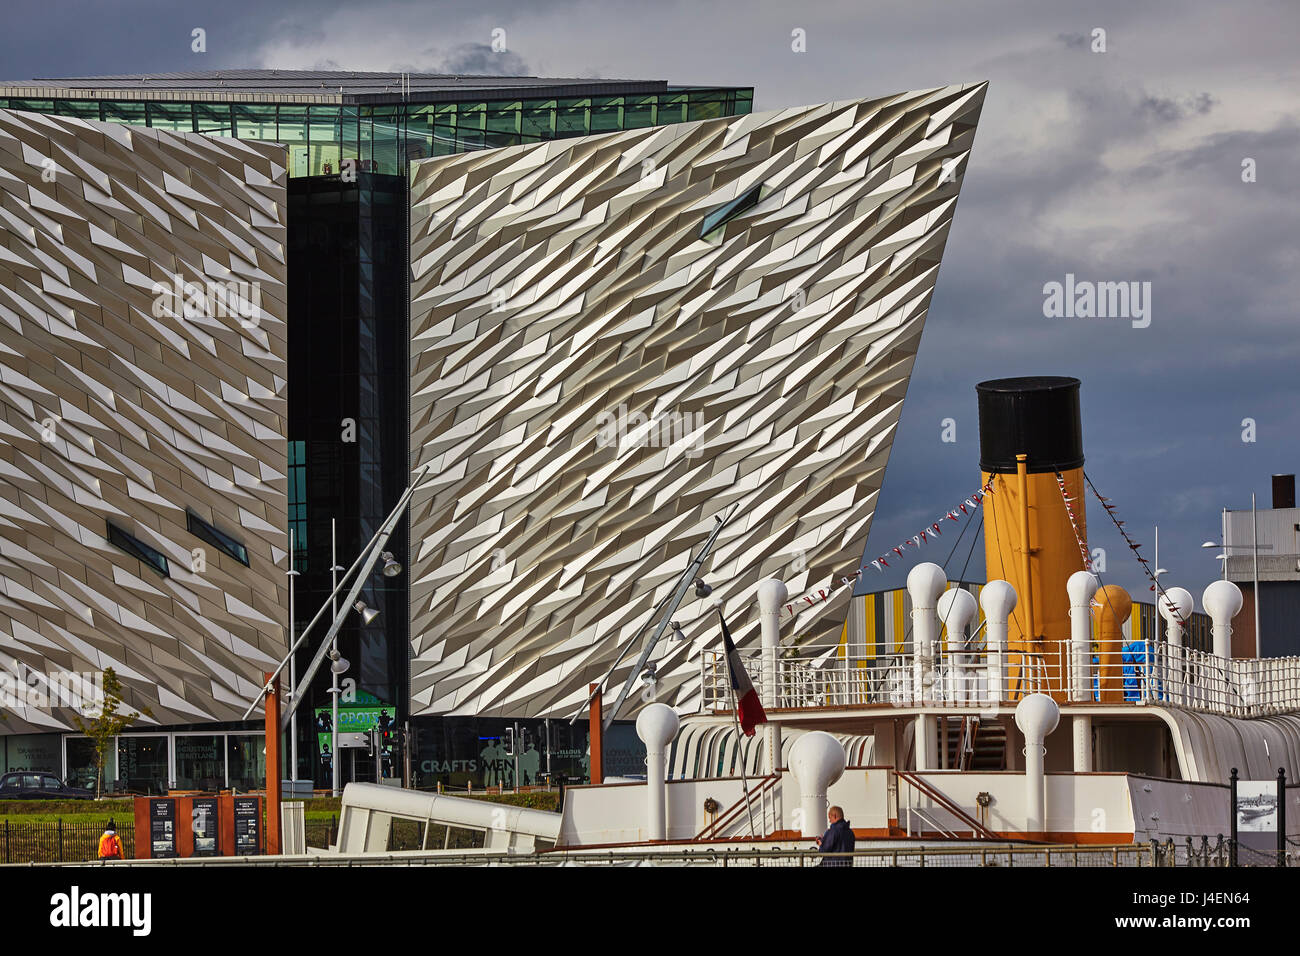 A view of the Titanic Museum, with the SS Nomadic, Belfast, Northern Ireland, UK Stock Photo